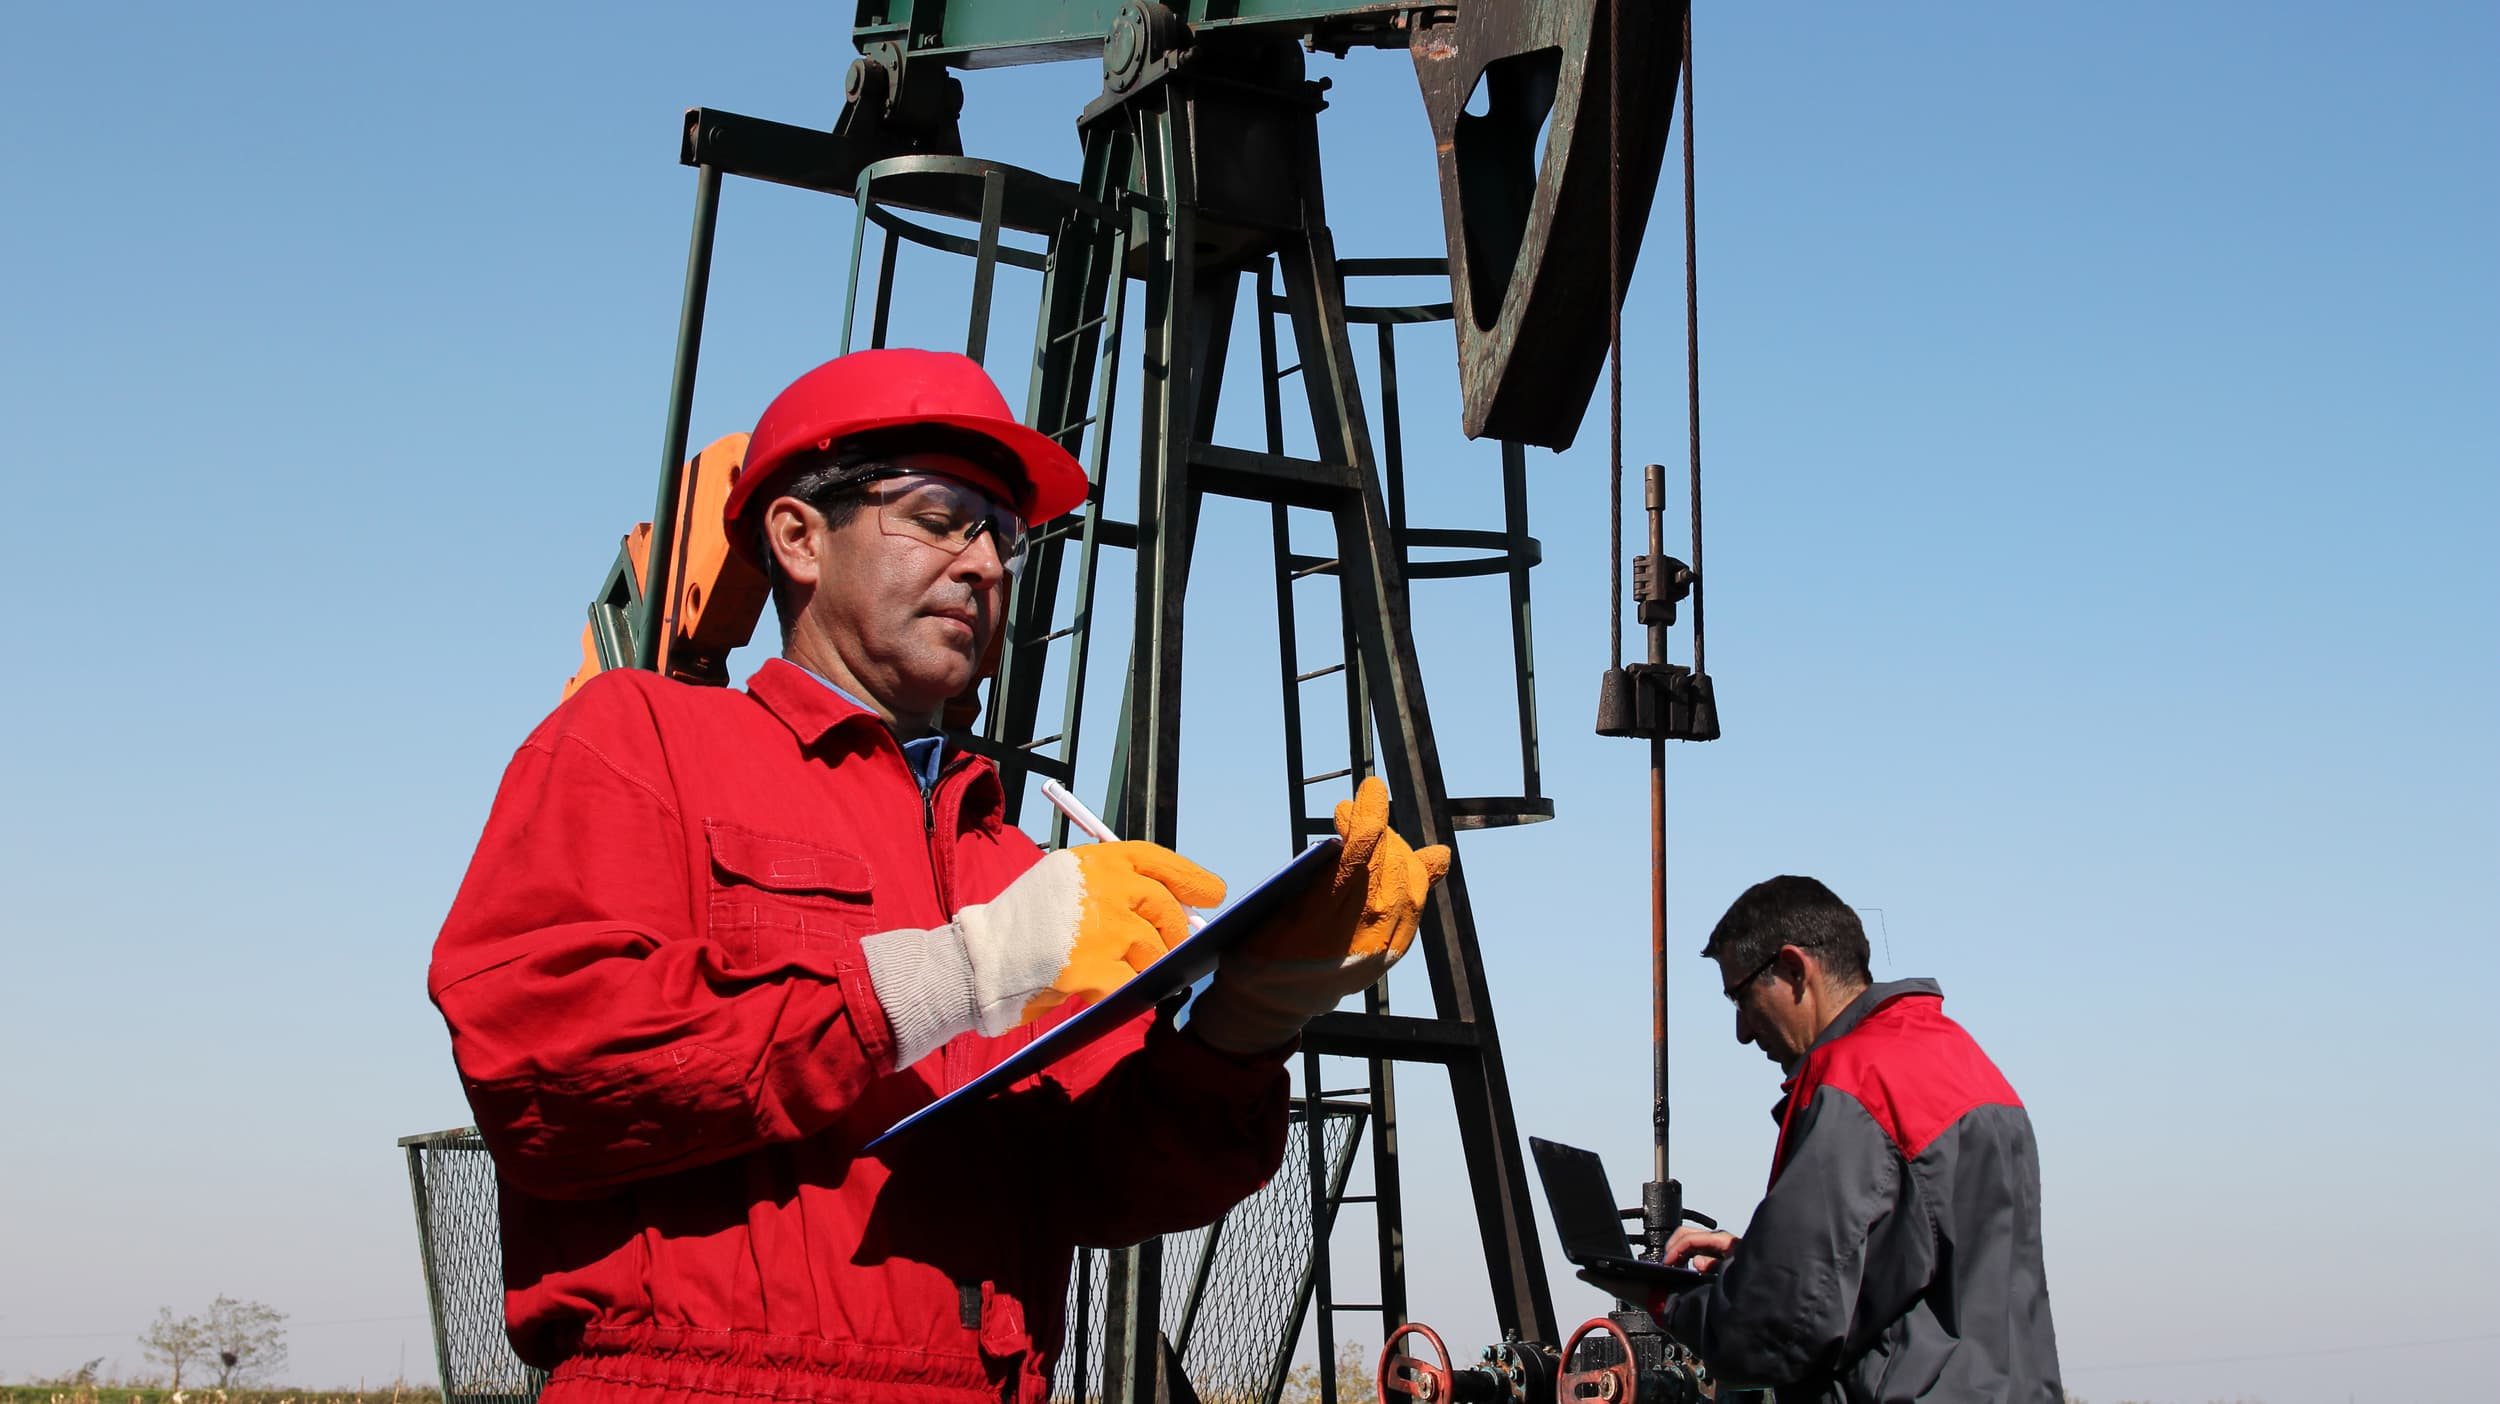 Compliance Training Online Oil & Gas Extraction Safety course